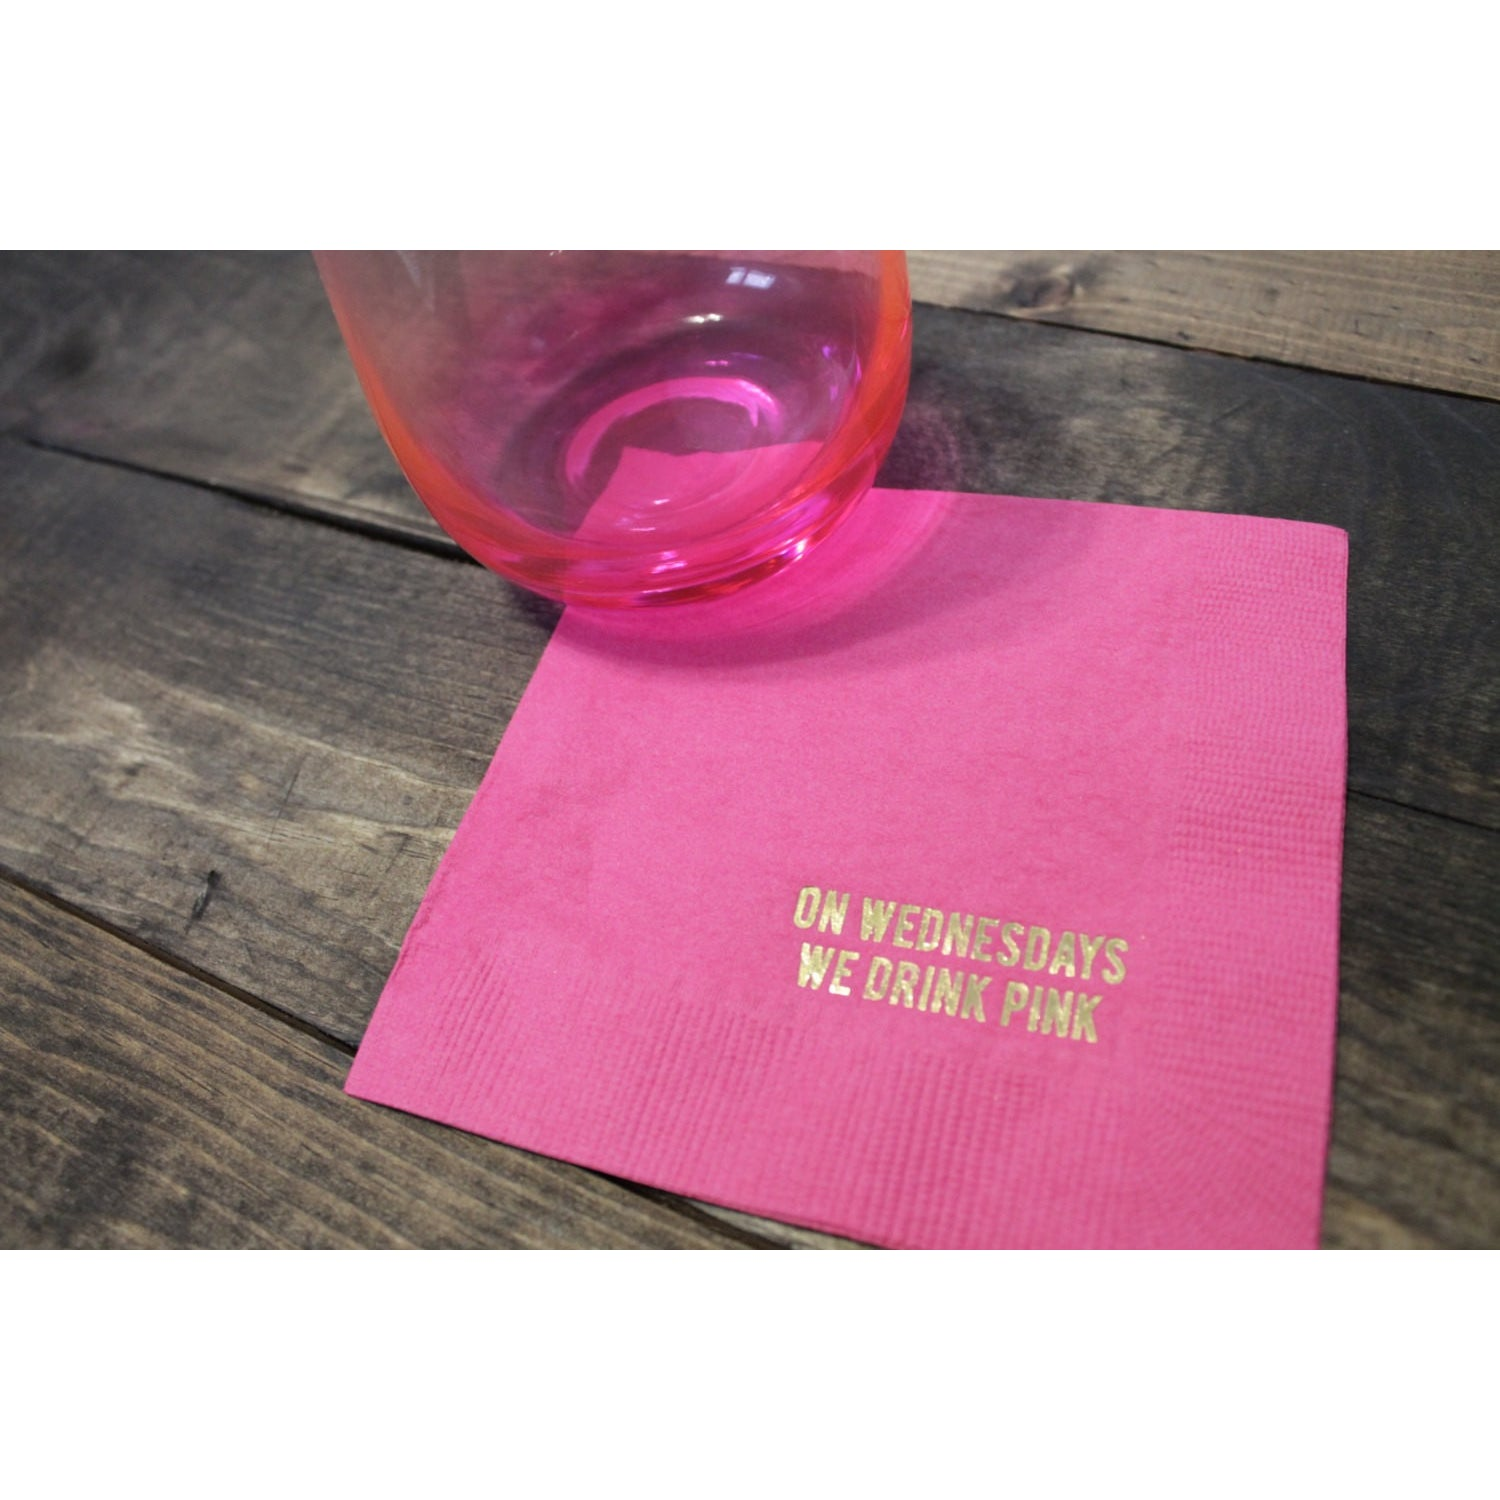 25 On Wednesday We Drink Pink Cocktail/Beverage Napkins FREE SHIPPING - Tulle and Twig